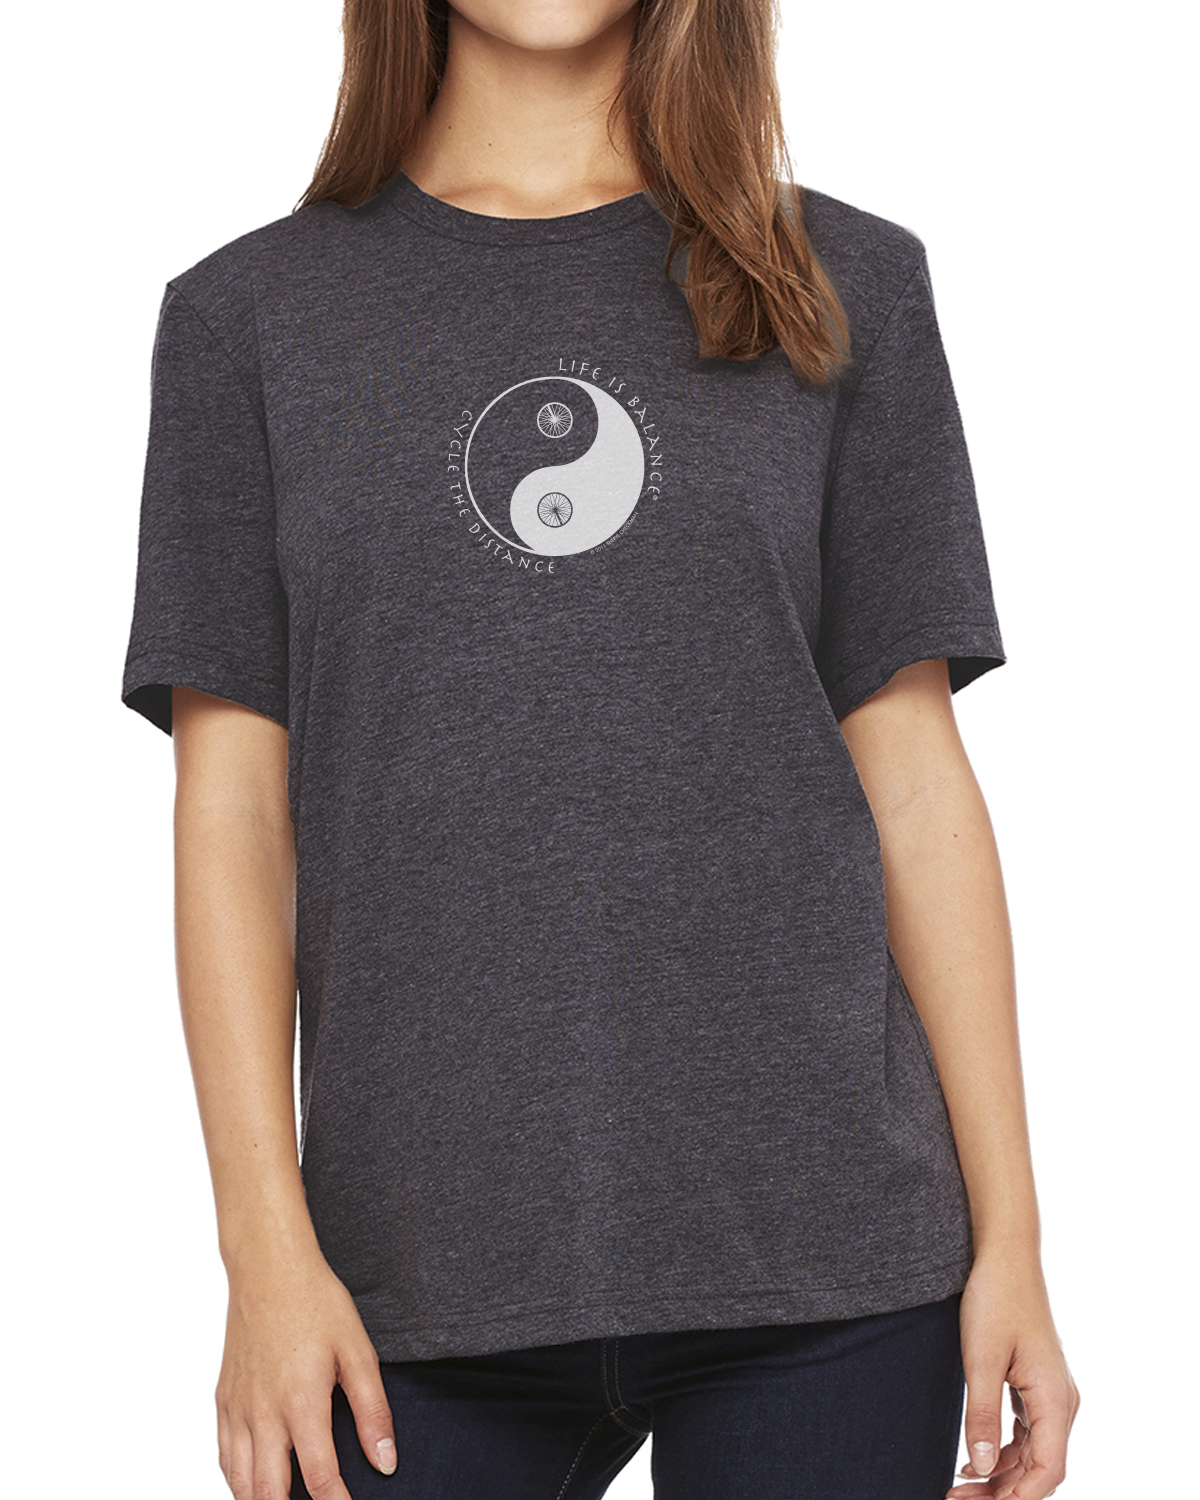 Women's short sleeve biking or cycling t-shirt (Dark gray heather)